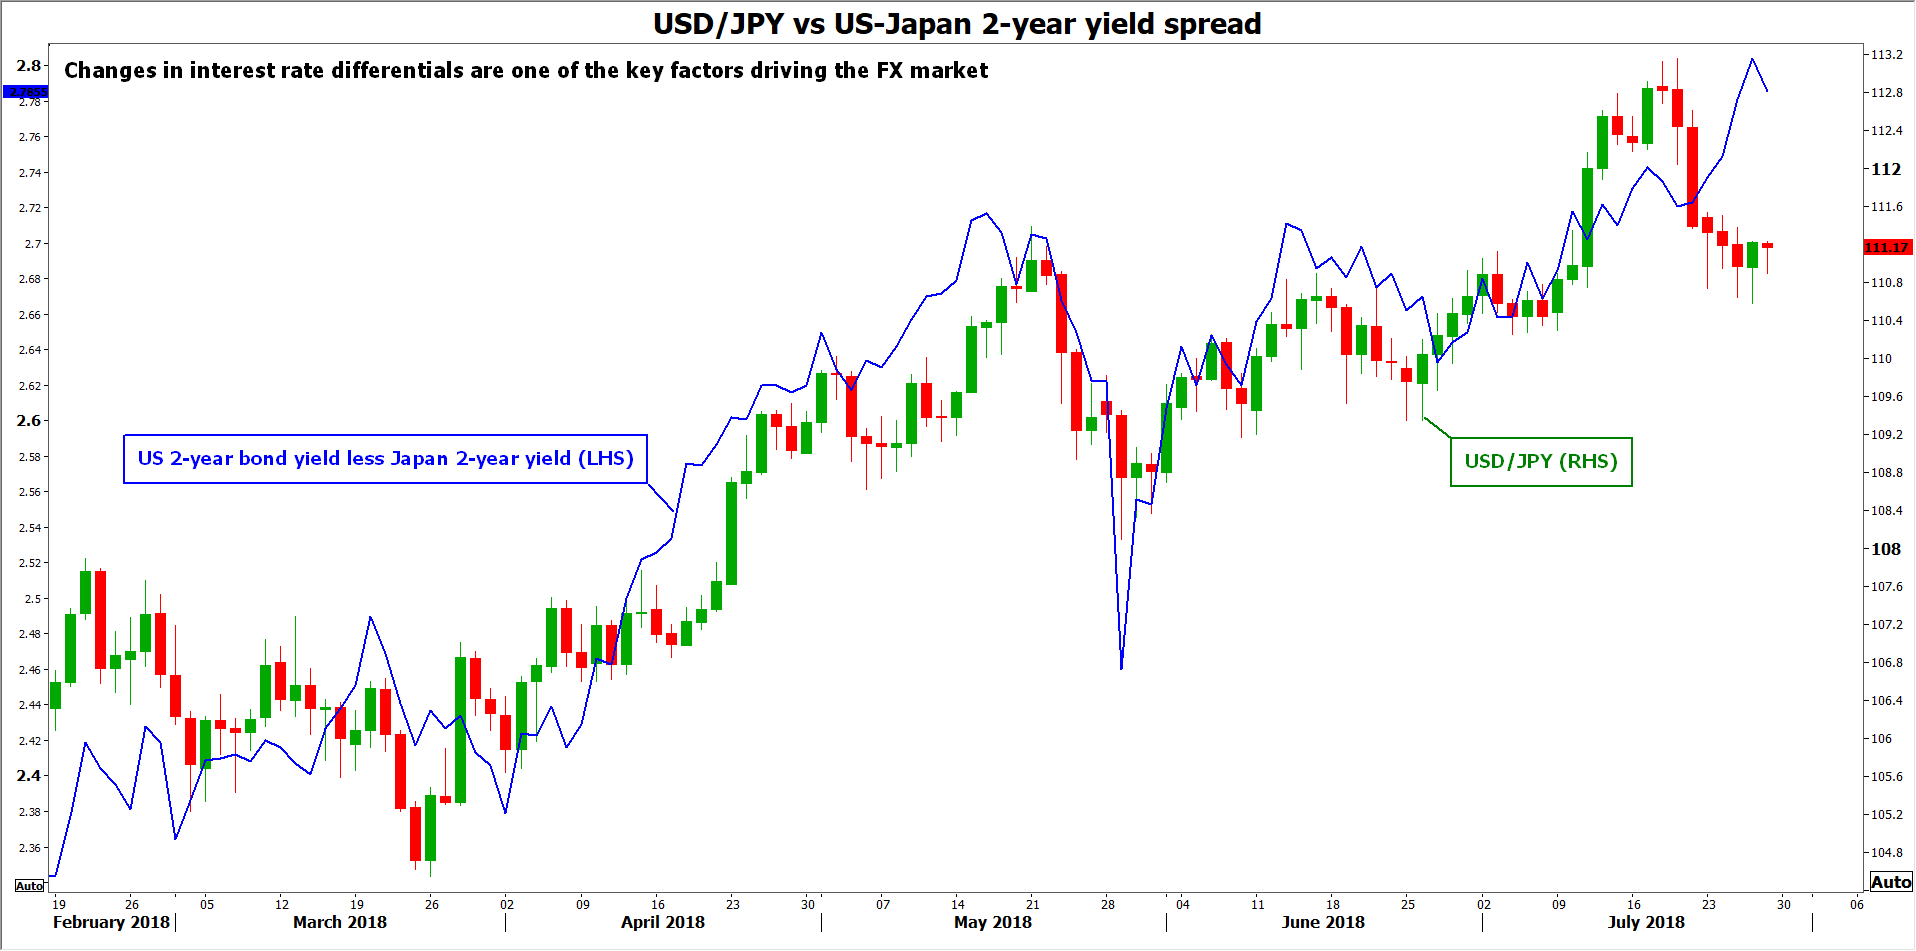 usd/jpy vs yield spreads | EconAlerts